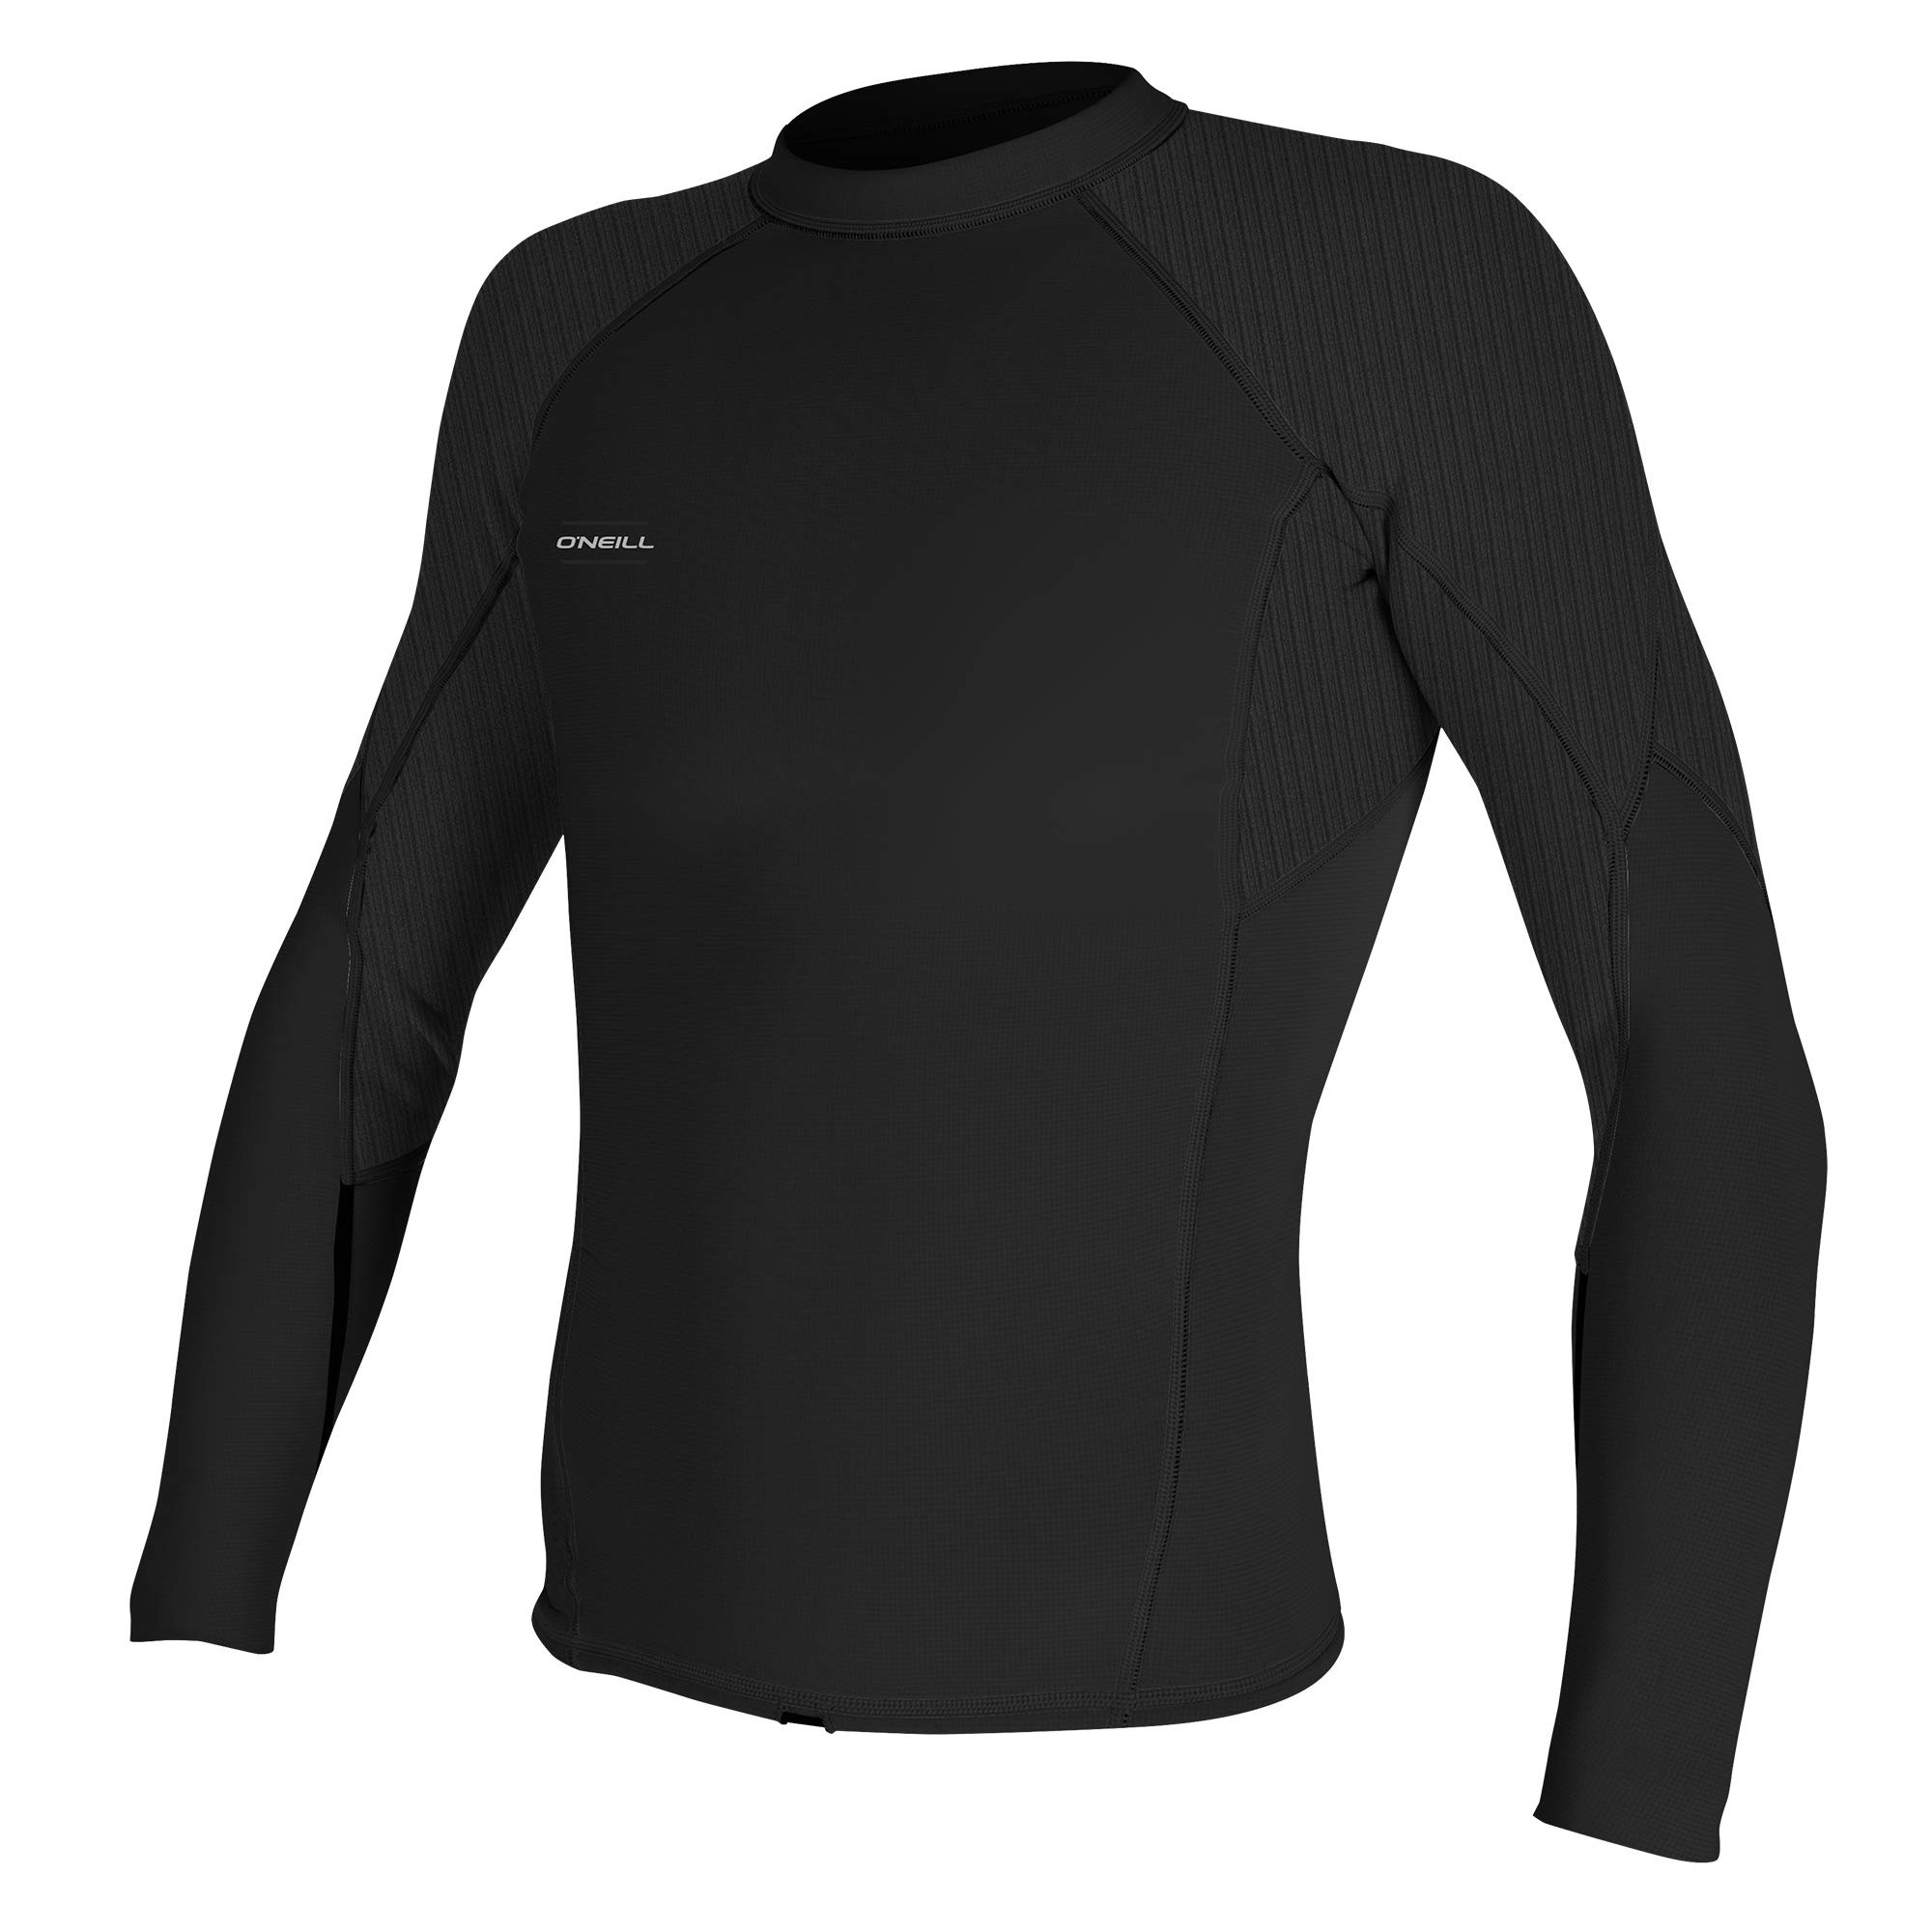 O'Neill Men's Hyperfreak 1.5mm Long Sleeve Top, Black/Black, Large Tall by O'Neill Wetsuits